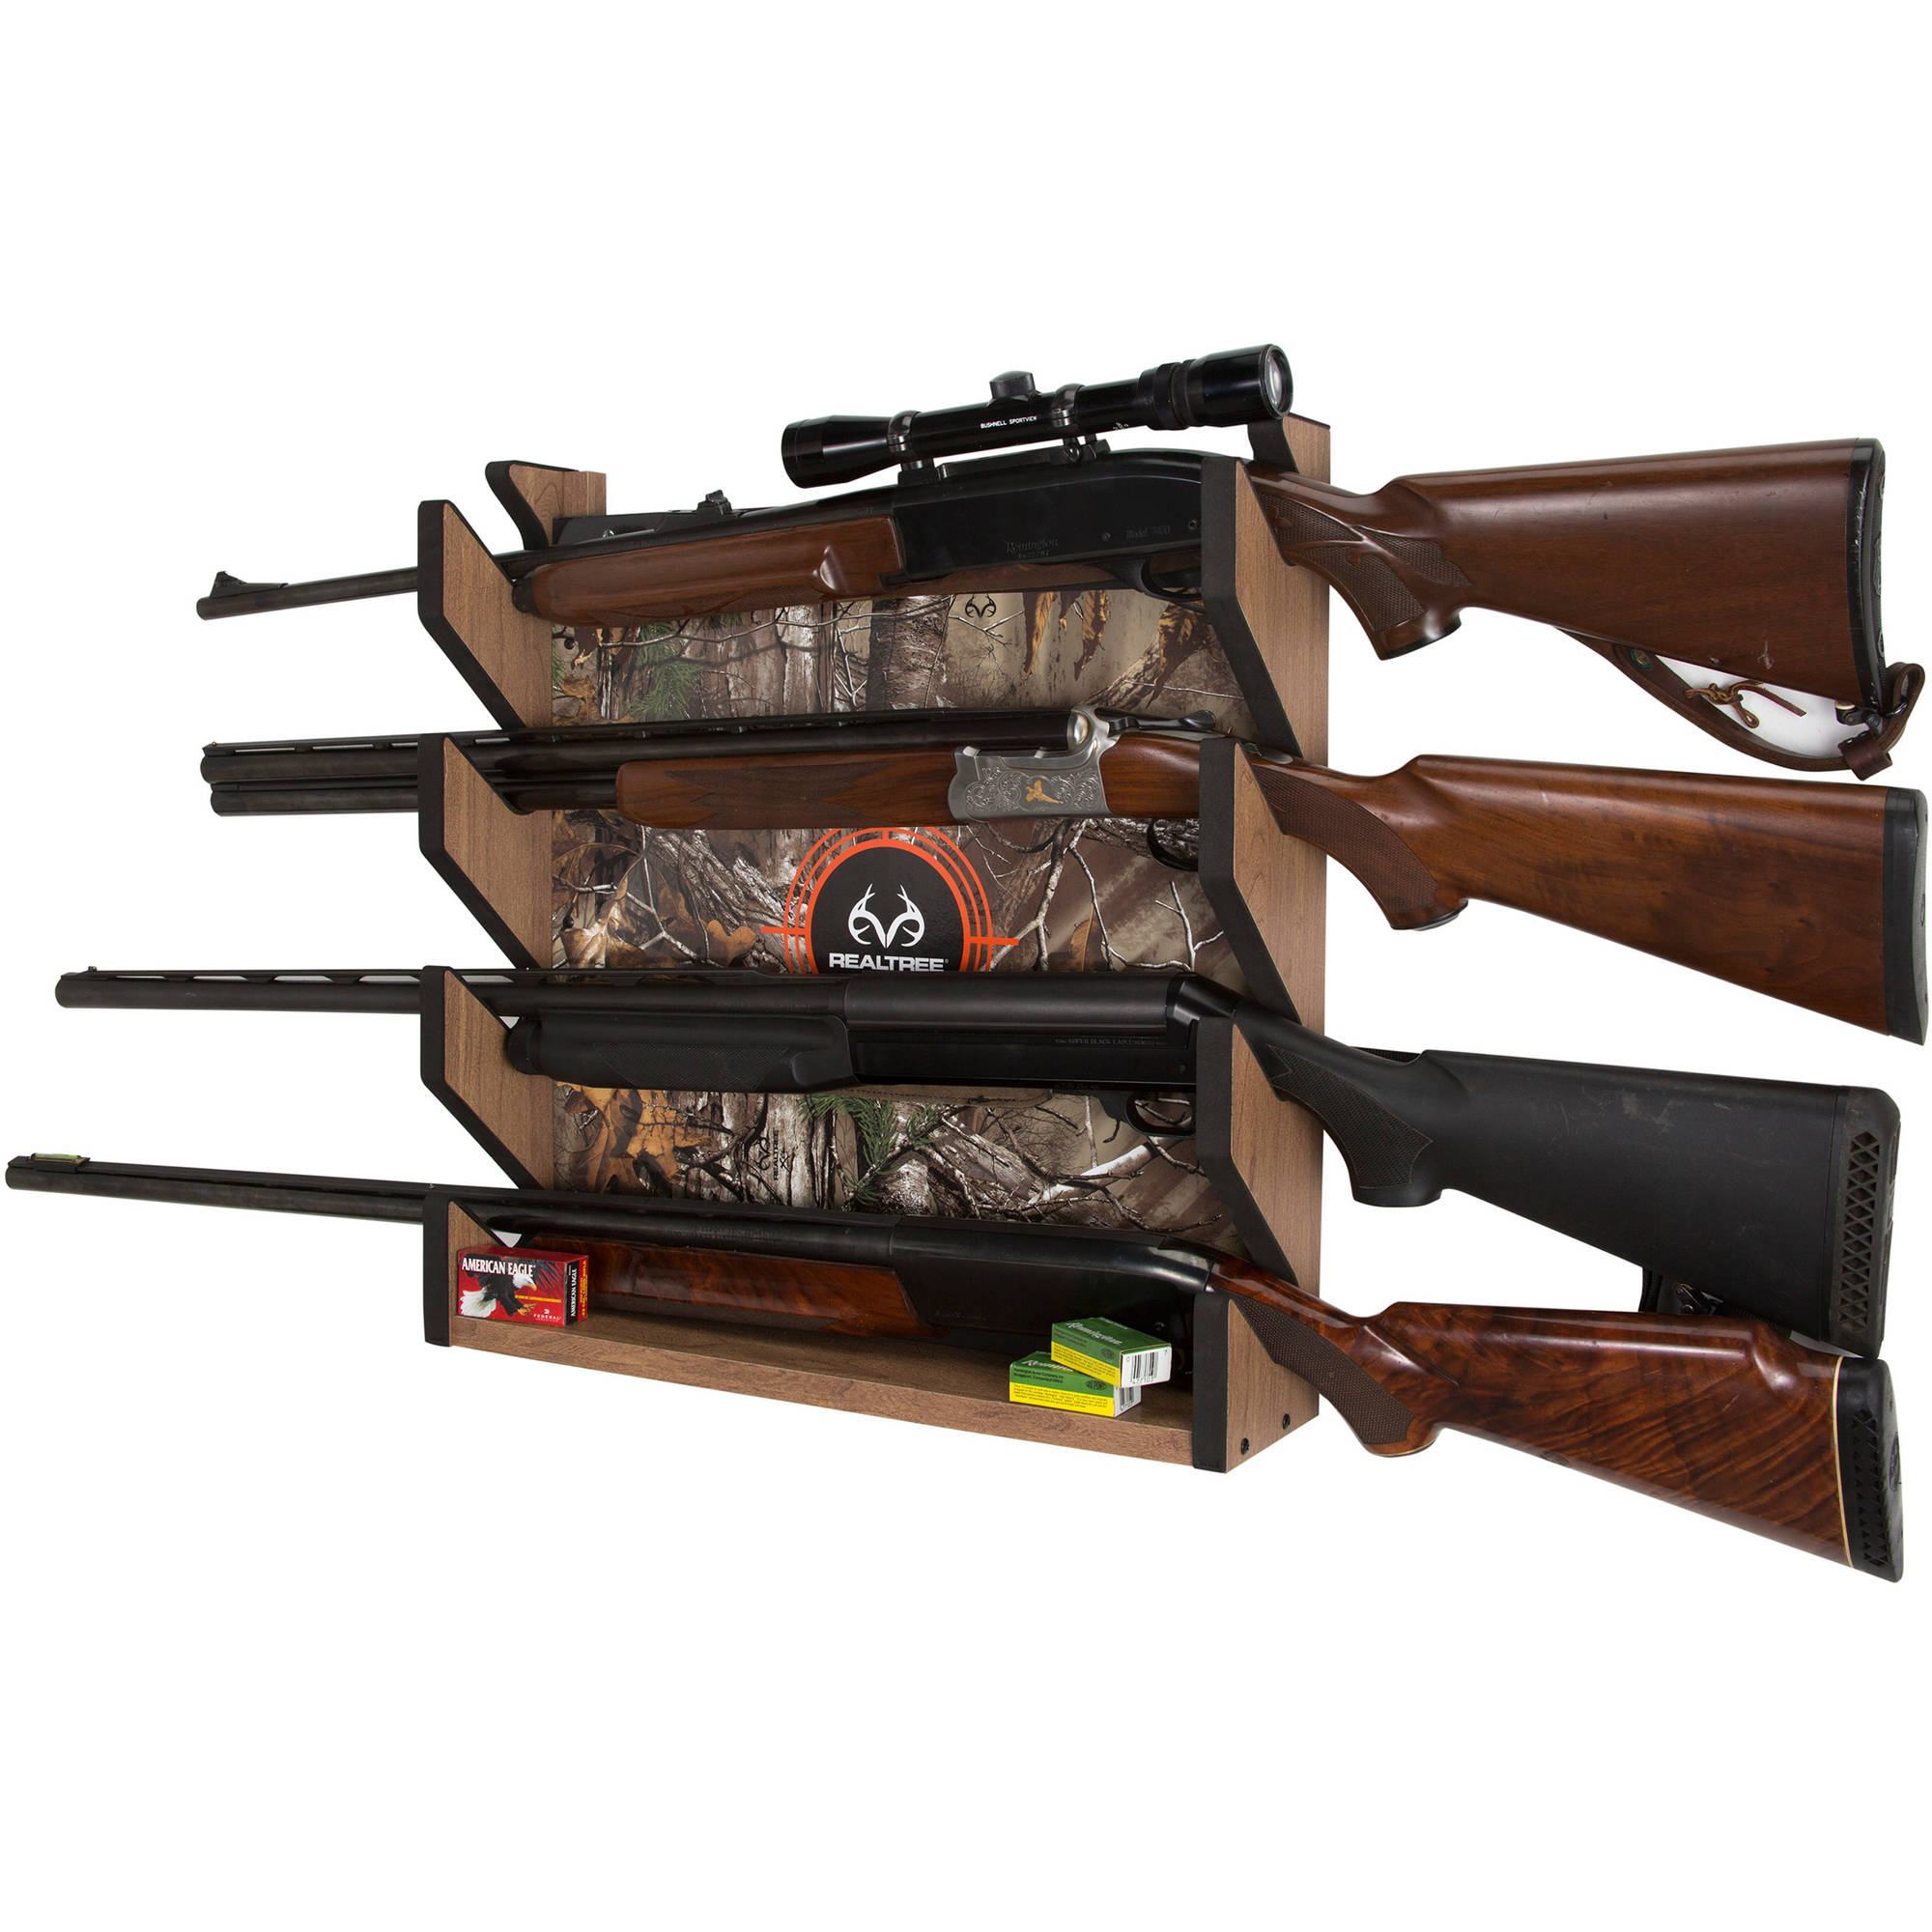 Click here to buy Rush Creek Creations REALTREE Camo 4 Gun Pine Wall Storage Rack by Rush Creek Creations.